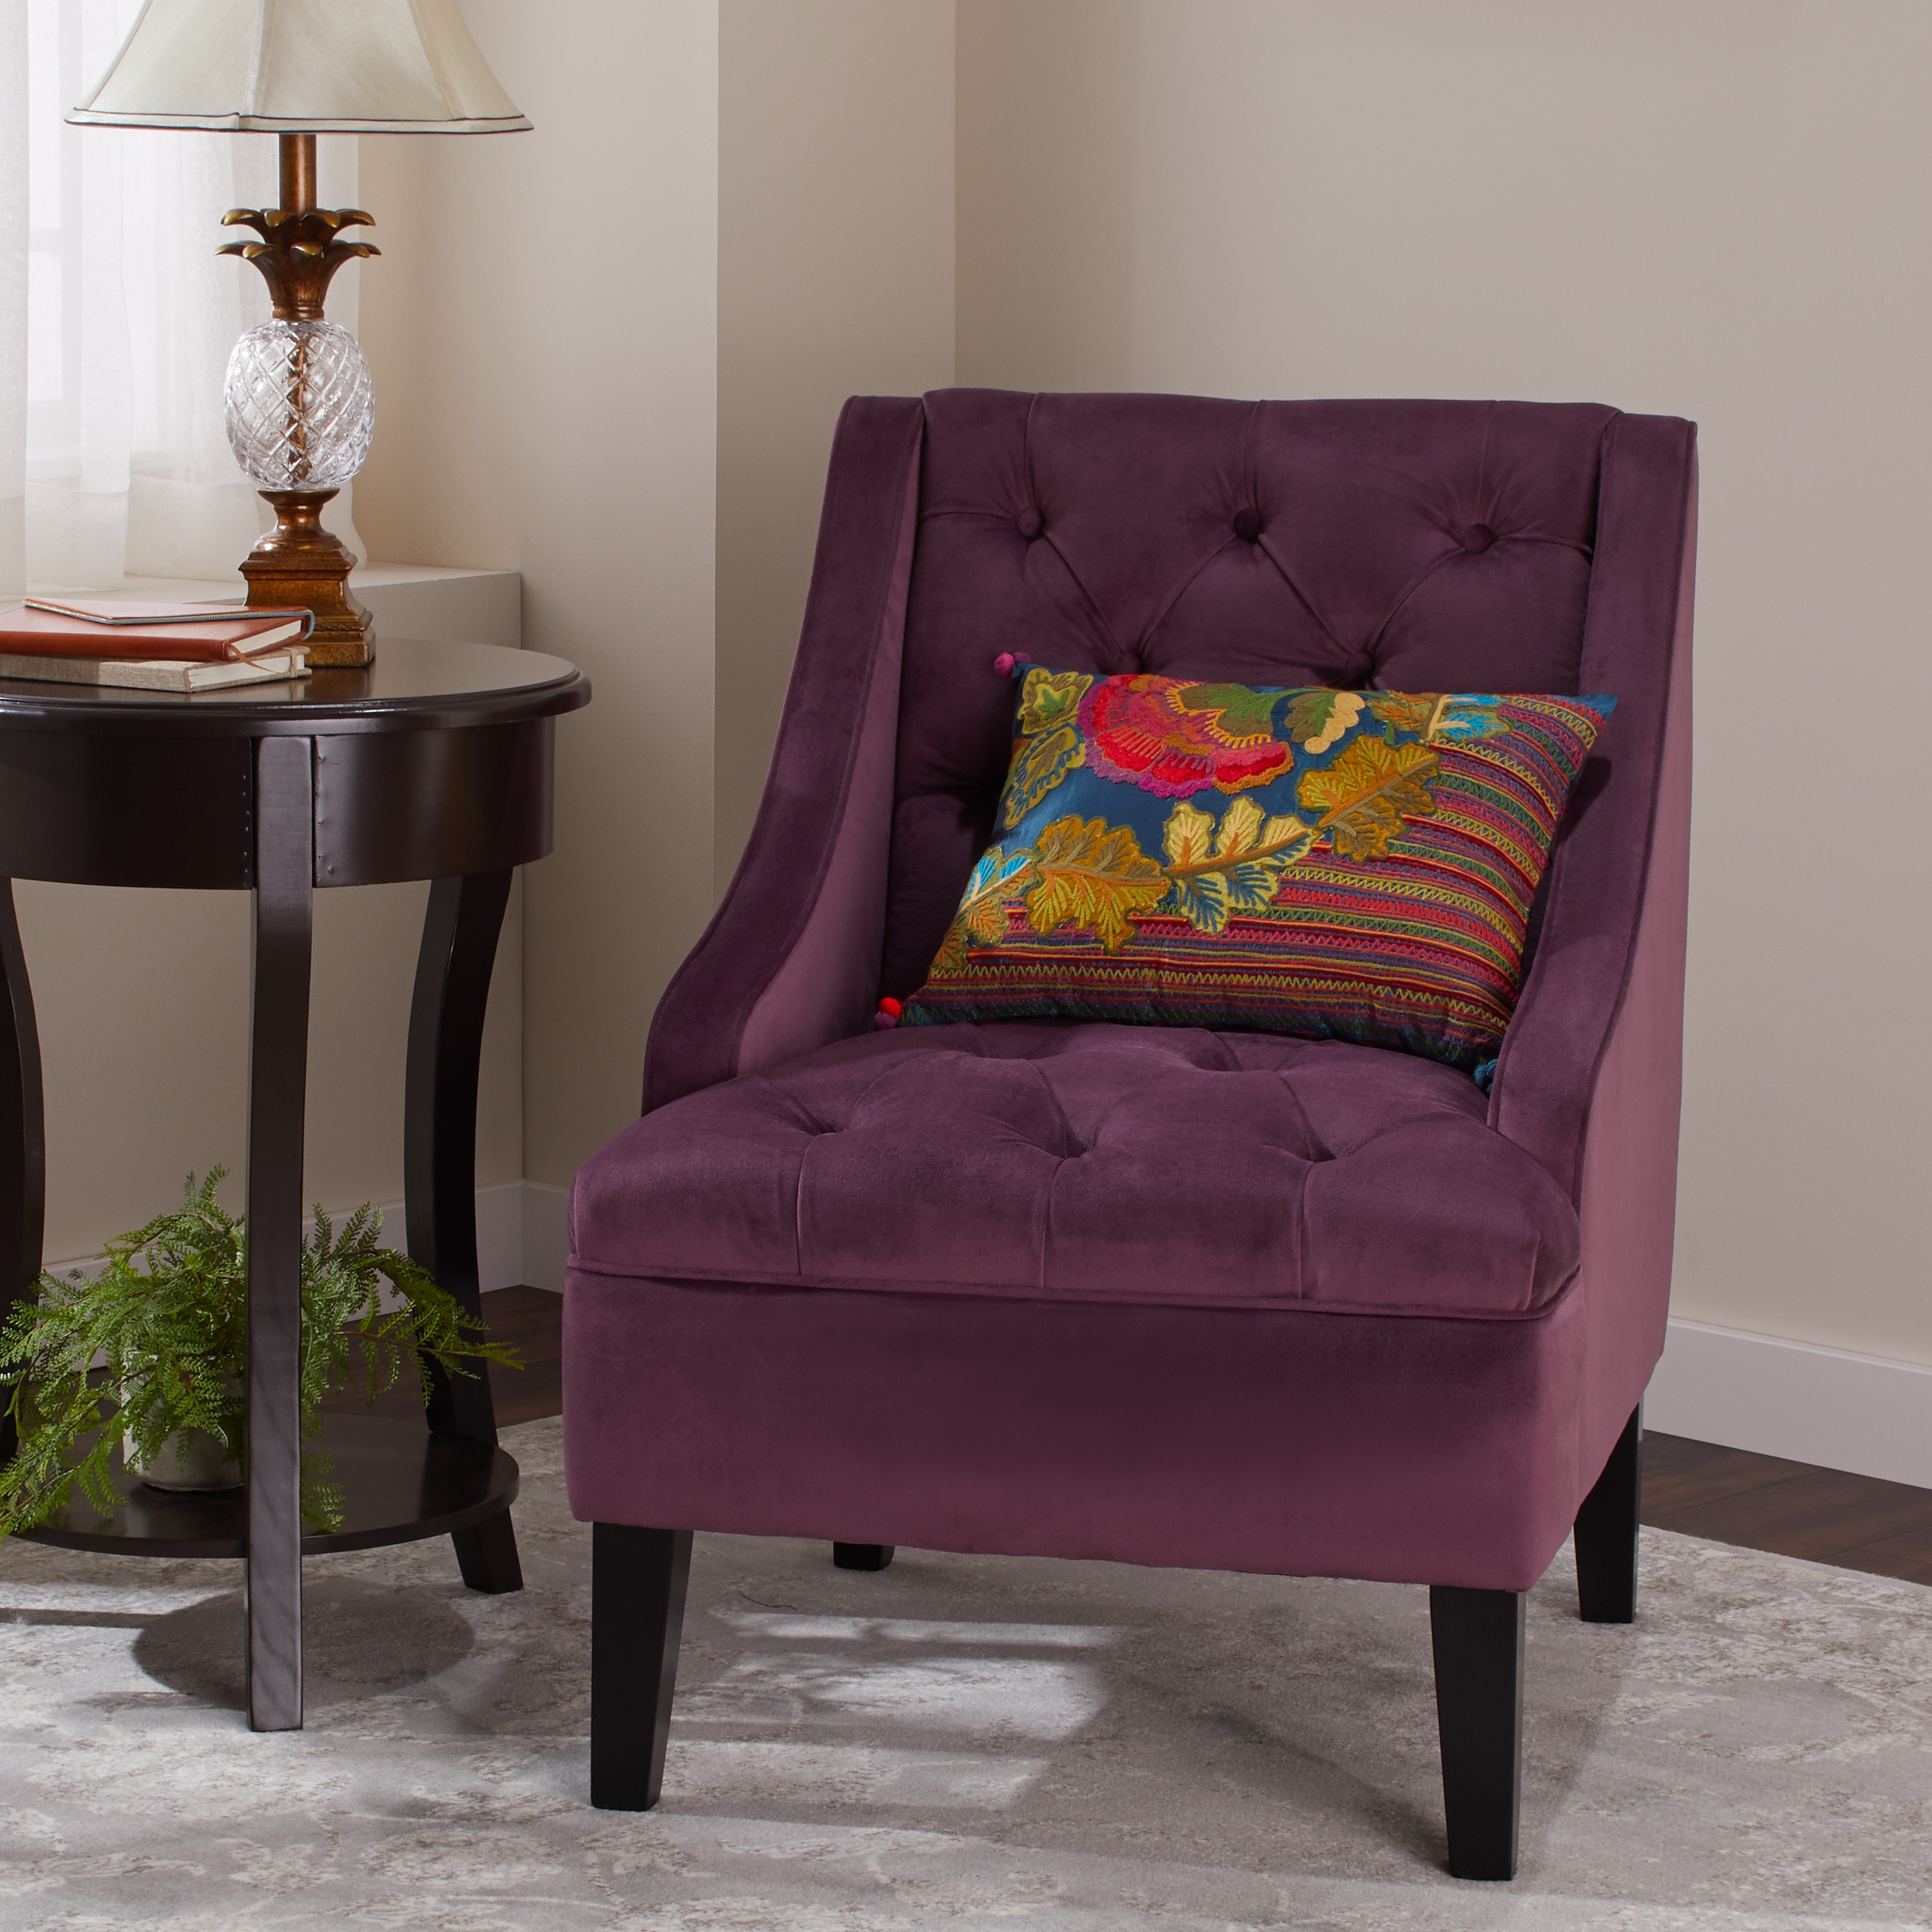 Abbyson Laguna Tufted Velvet Purple Accent Chair On Free Shipping Today 9421251